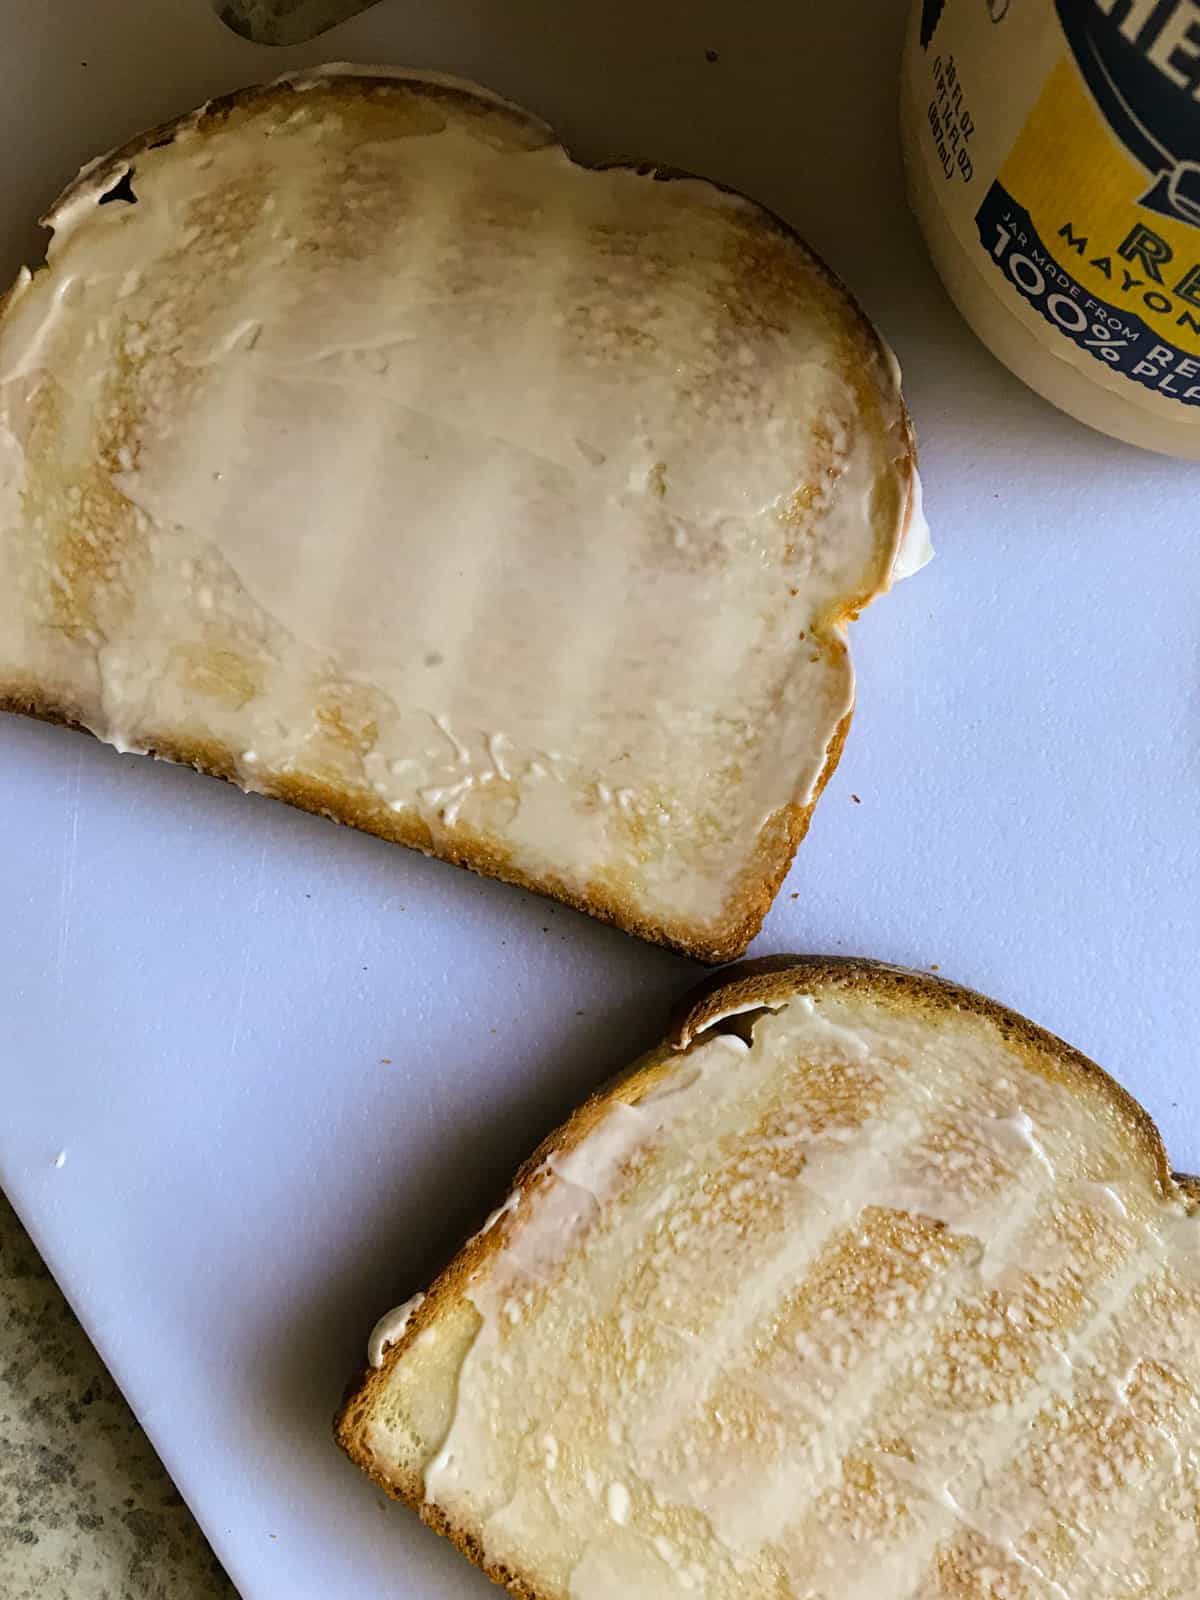 Mayonnaise spread on grilled bread.